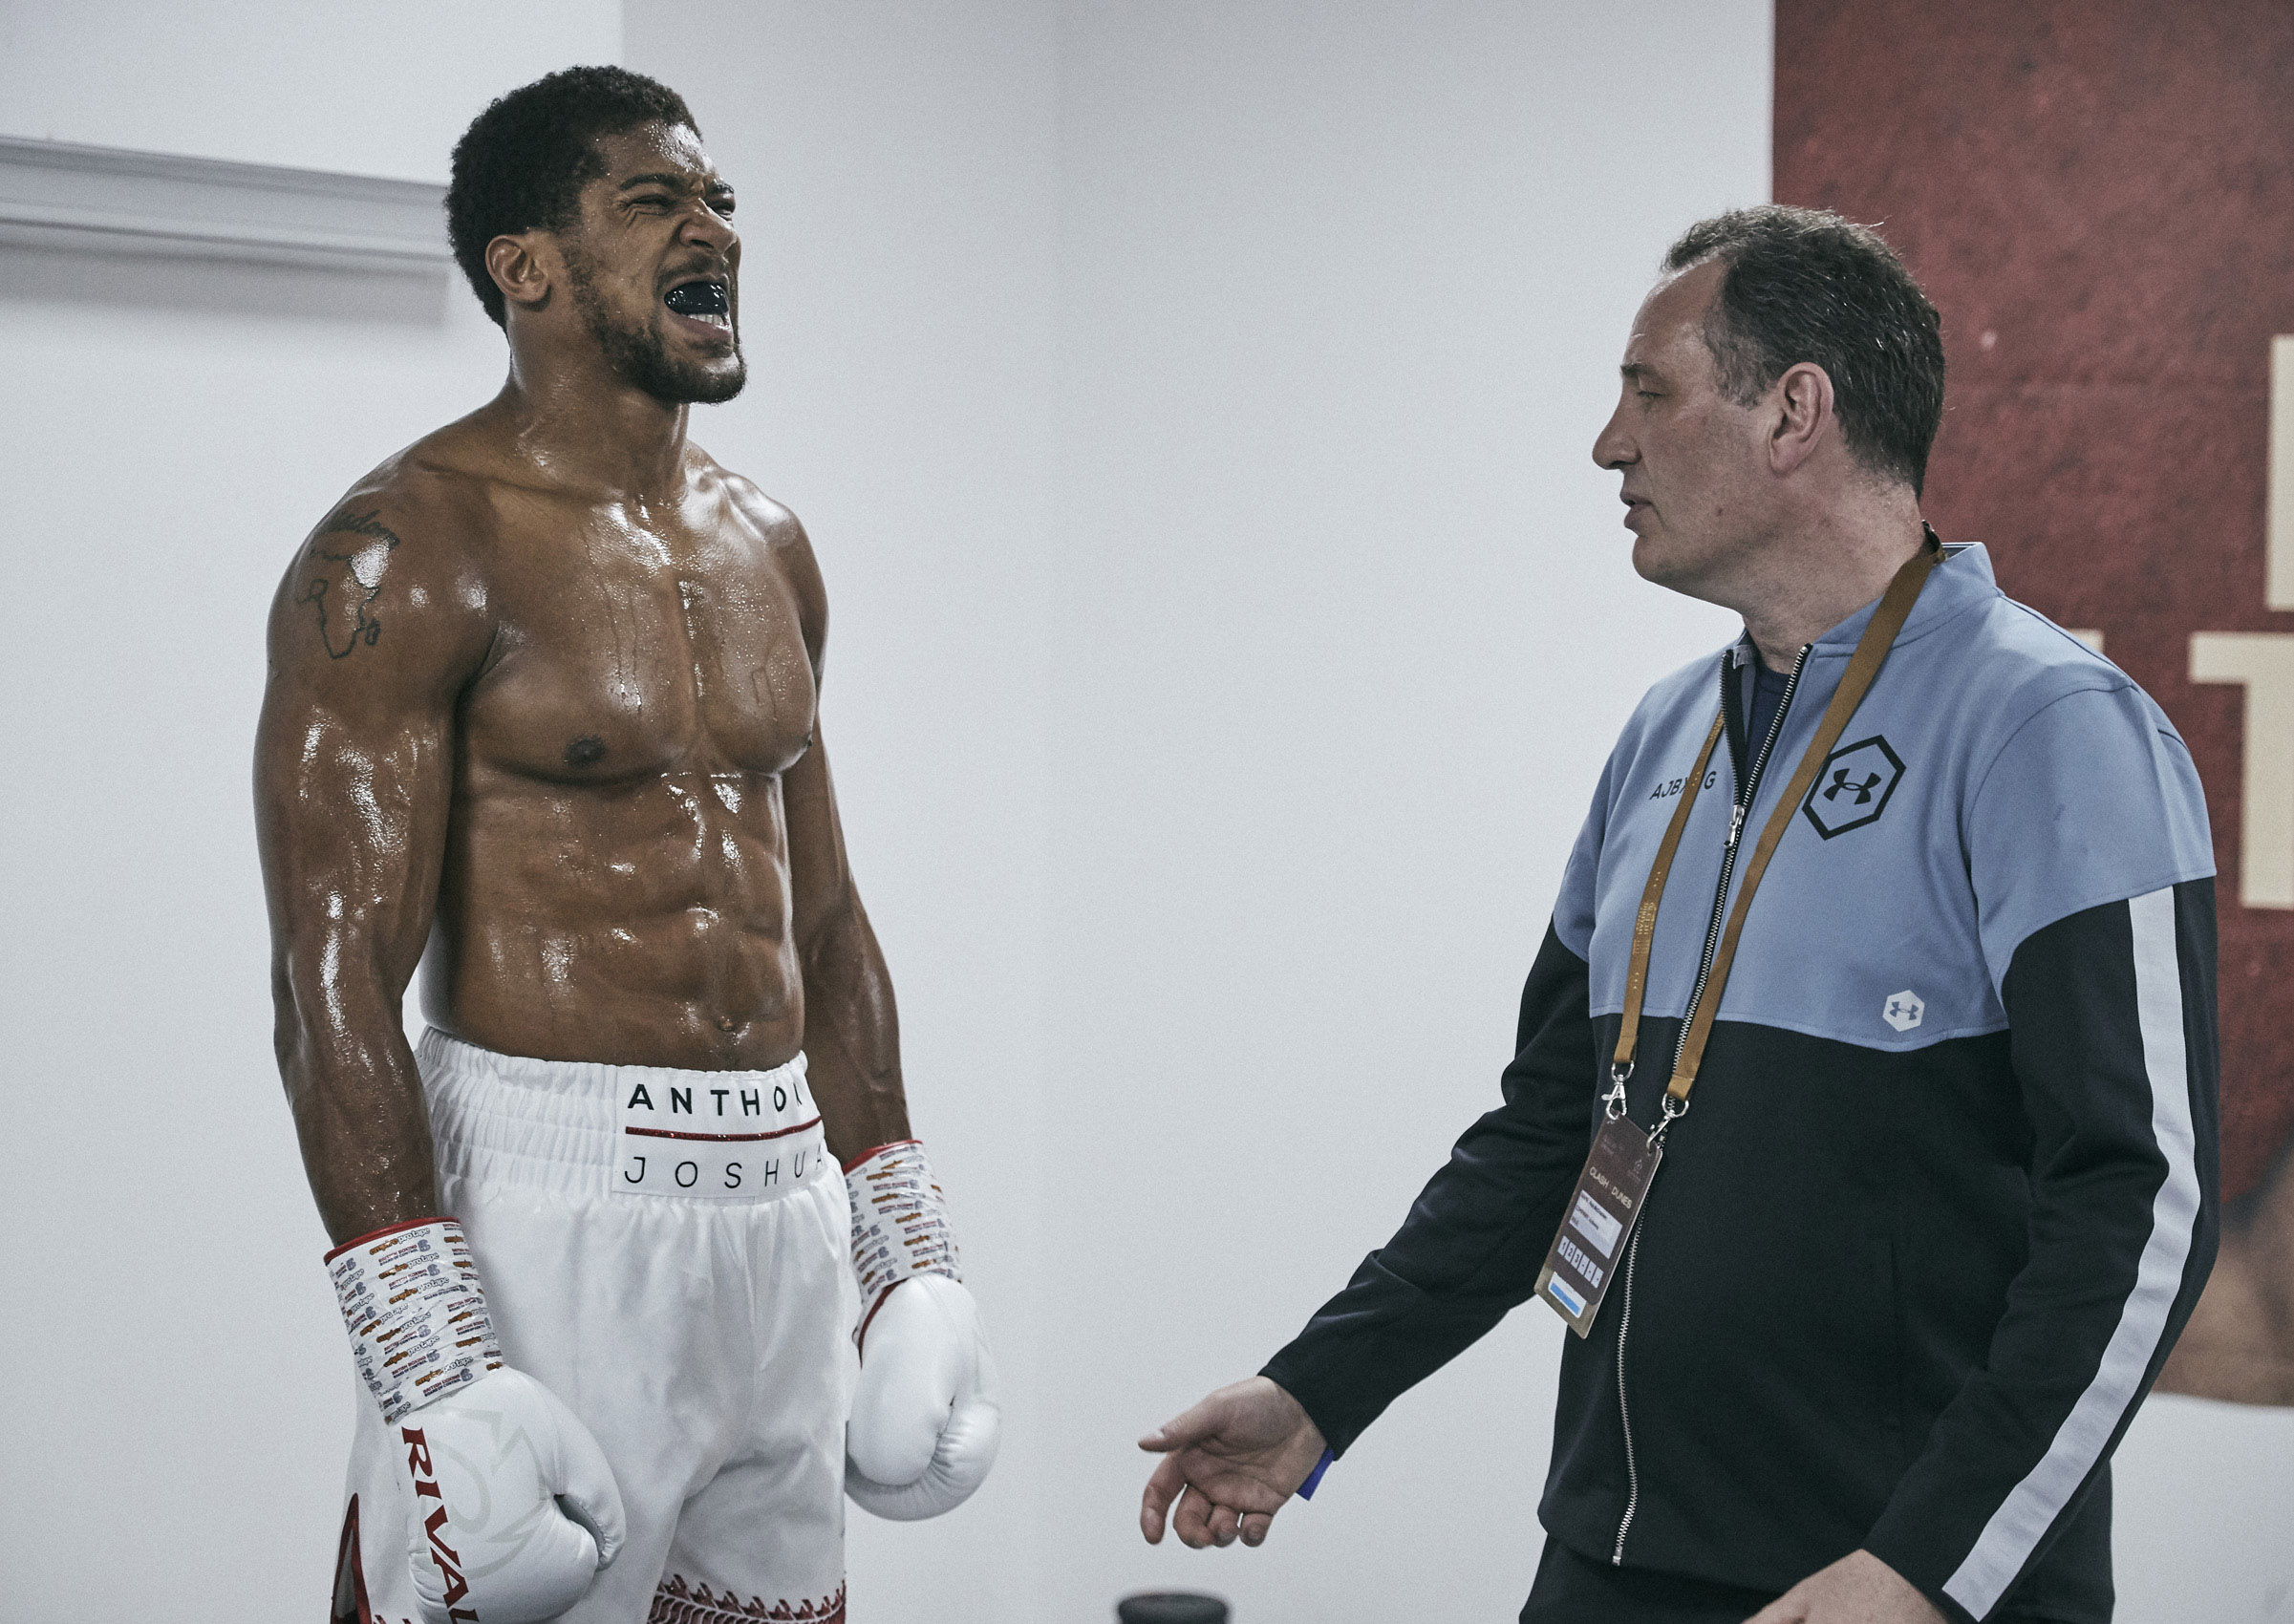 Anthony Joshua Warm Up Backstage Rob McCracken coach final words Saudi Arabia © Mark Robinson Photographer Matchrrom Boxing 2019.